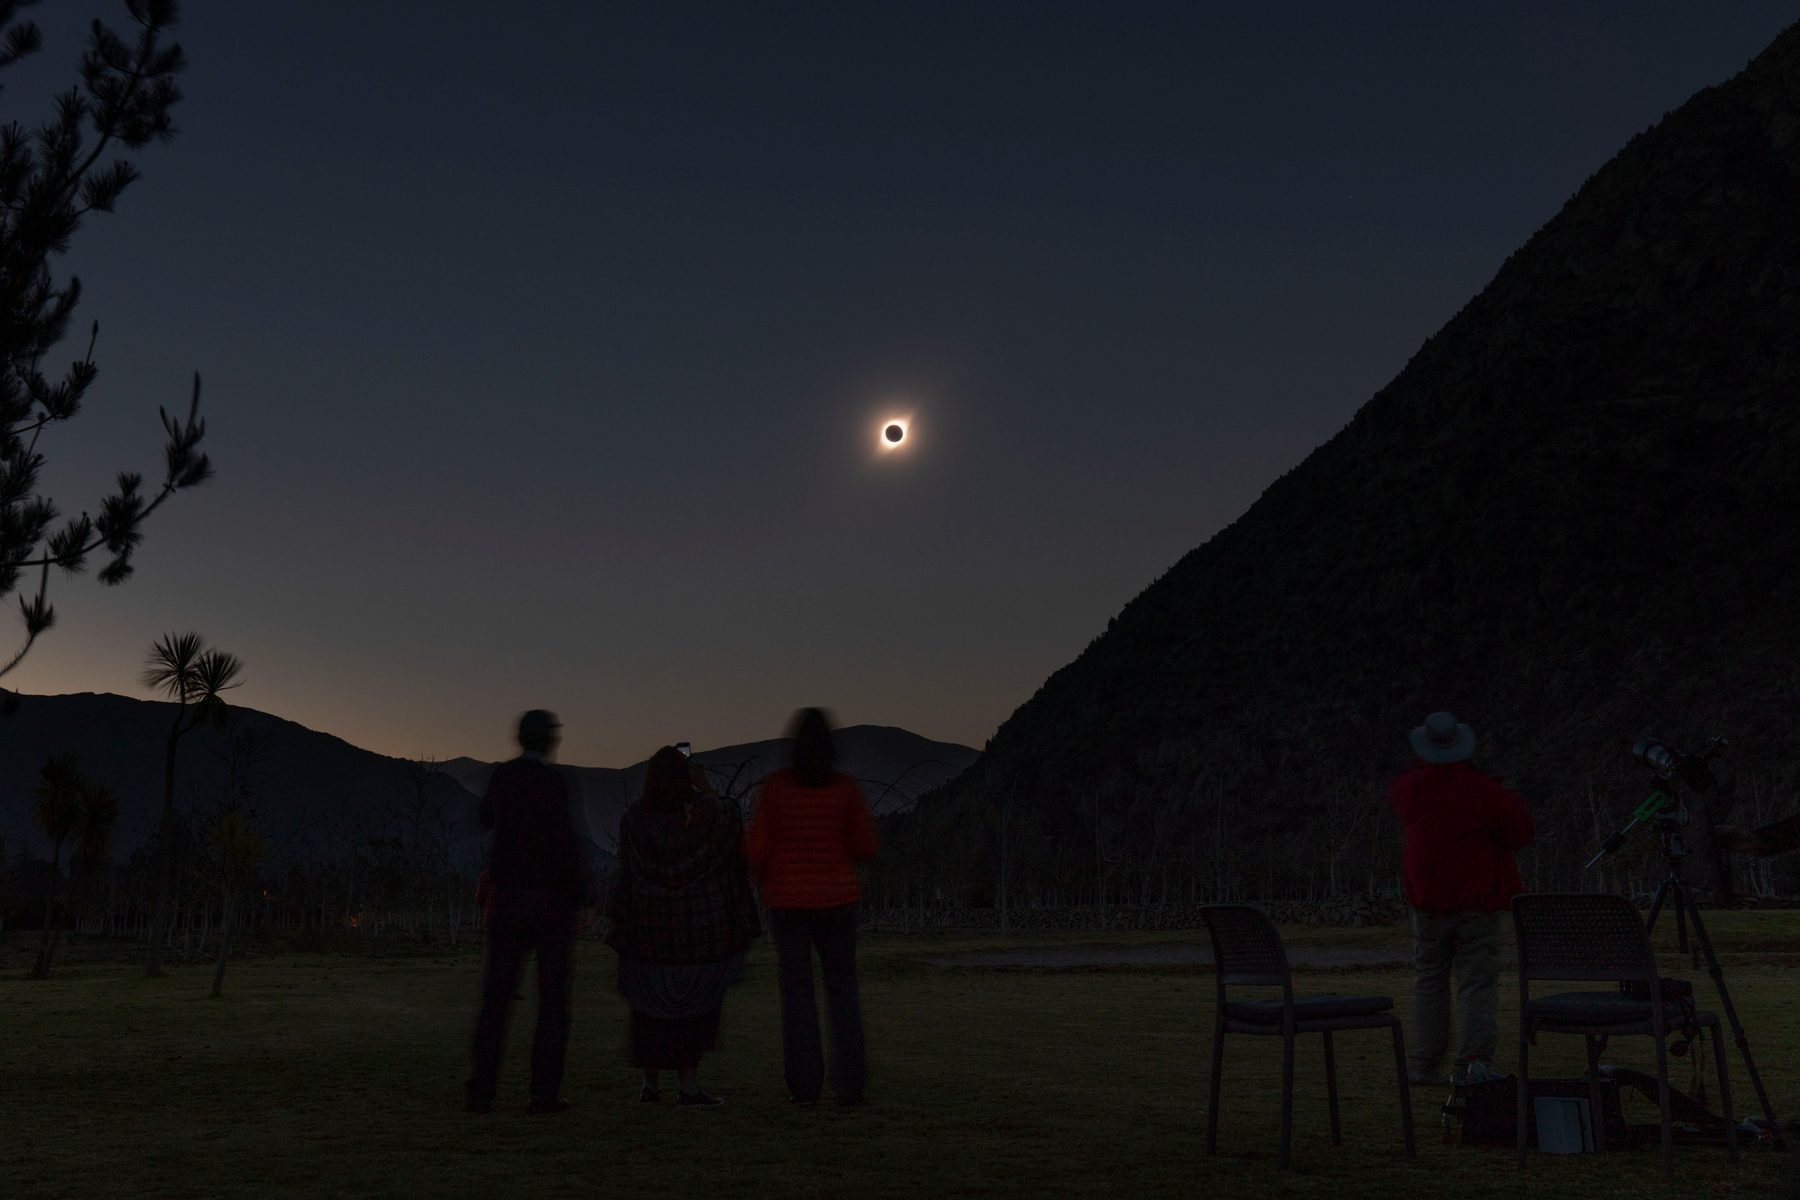 People watch the total solar eclipse from El Molle, Chile, on July 2, 2019